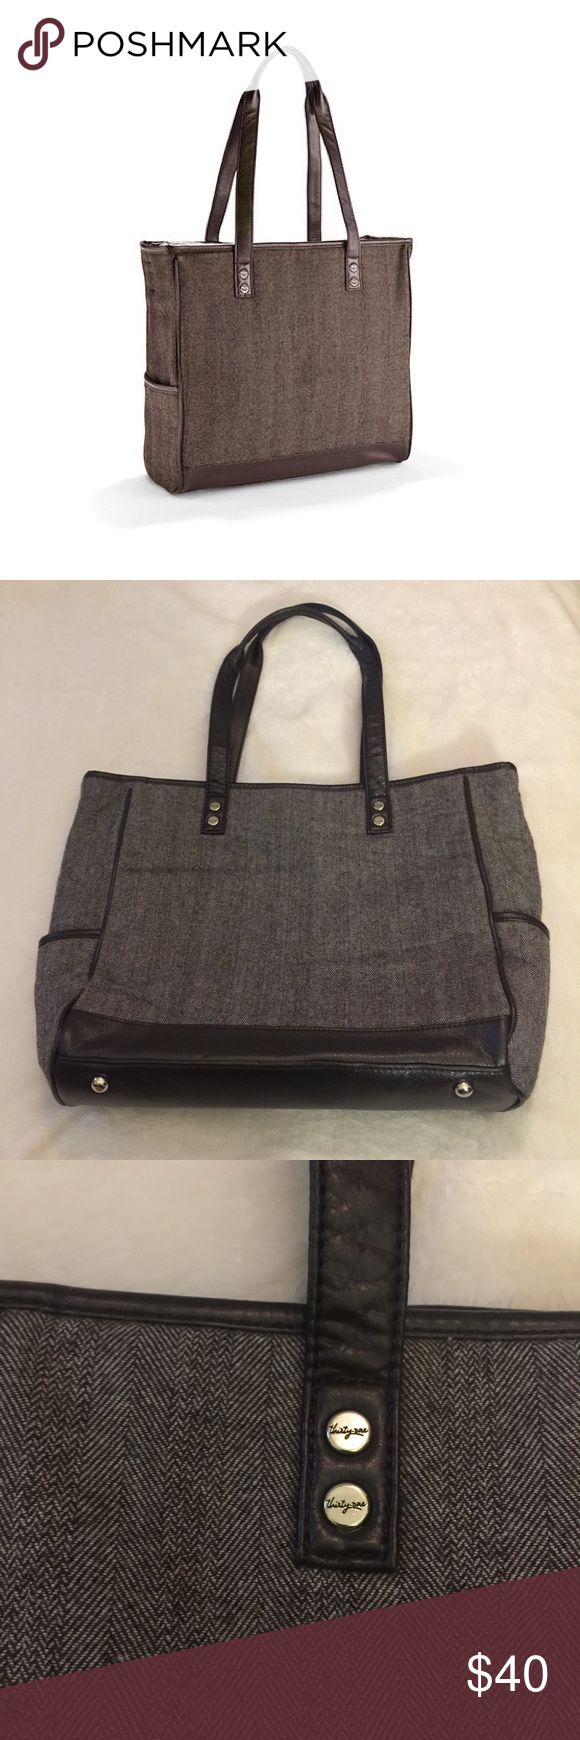 """Like new thirty one Cindy tote Excellent condition thirty one Cindy tote in brown herringbone. Has 2 side slip pockets on the outside, zipper to main pocket, 1 inner zip pocket, and 3 inner slip pockets. Has D ring inside on one side and a lobster clasp on the other. Very nice large bag. Perfect for the office or everyday! 14""""H x 15""""L x 5""""D thirty one Bags Totes"""